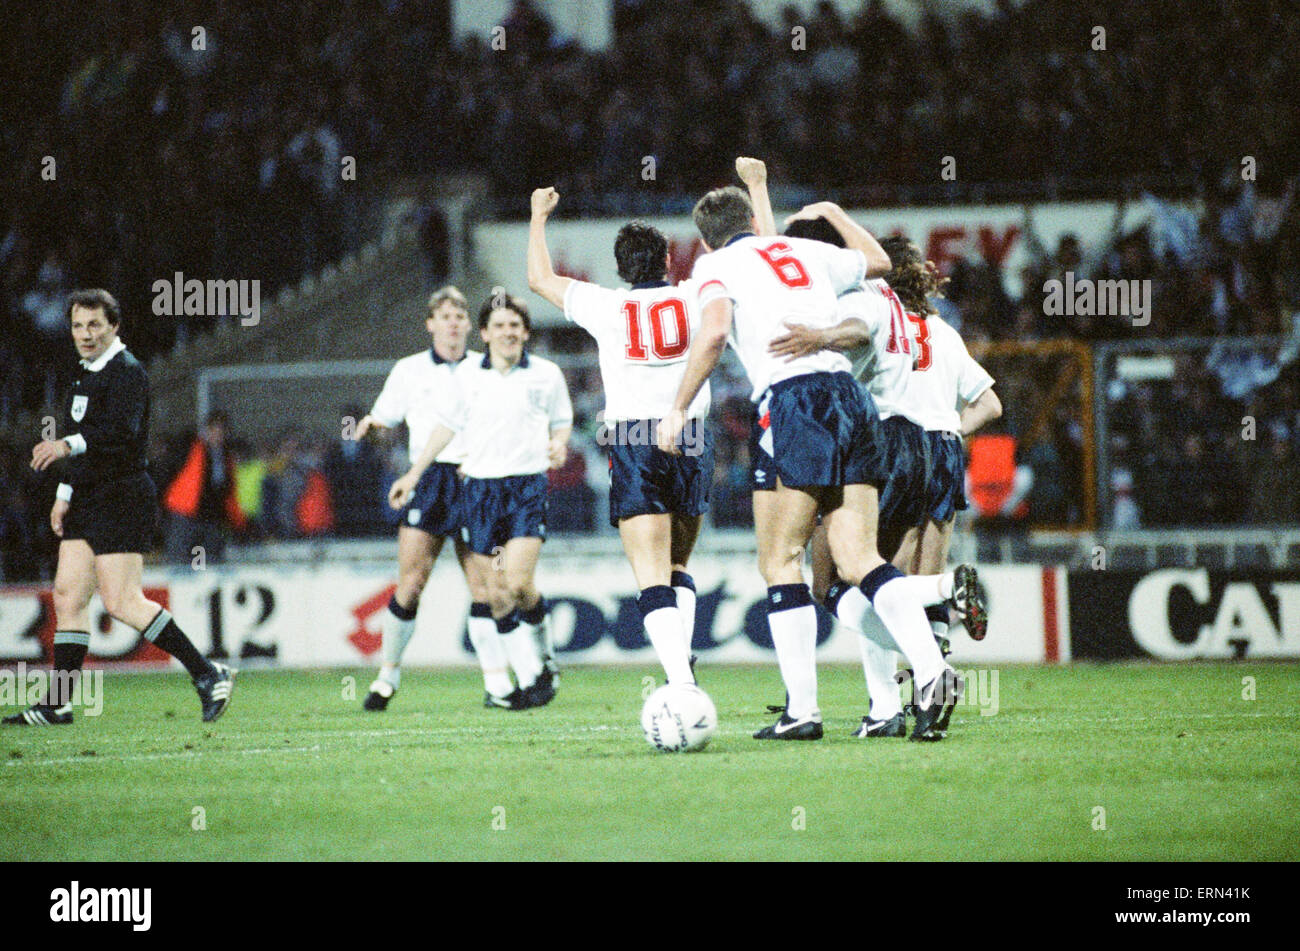 England v Brazil 28th March 1990, Wembley. Gary Linekar (10) and the rest of the team celebrate after defeating - Stock Image